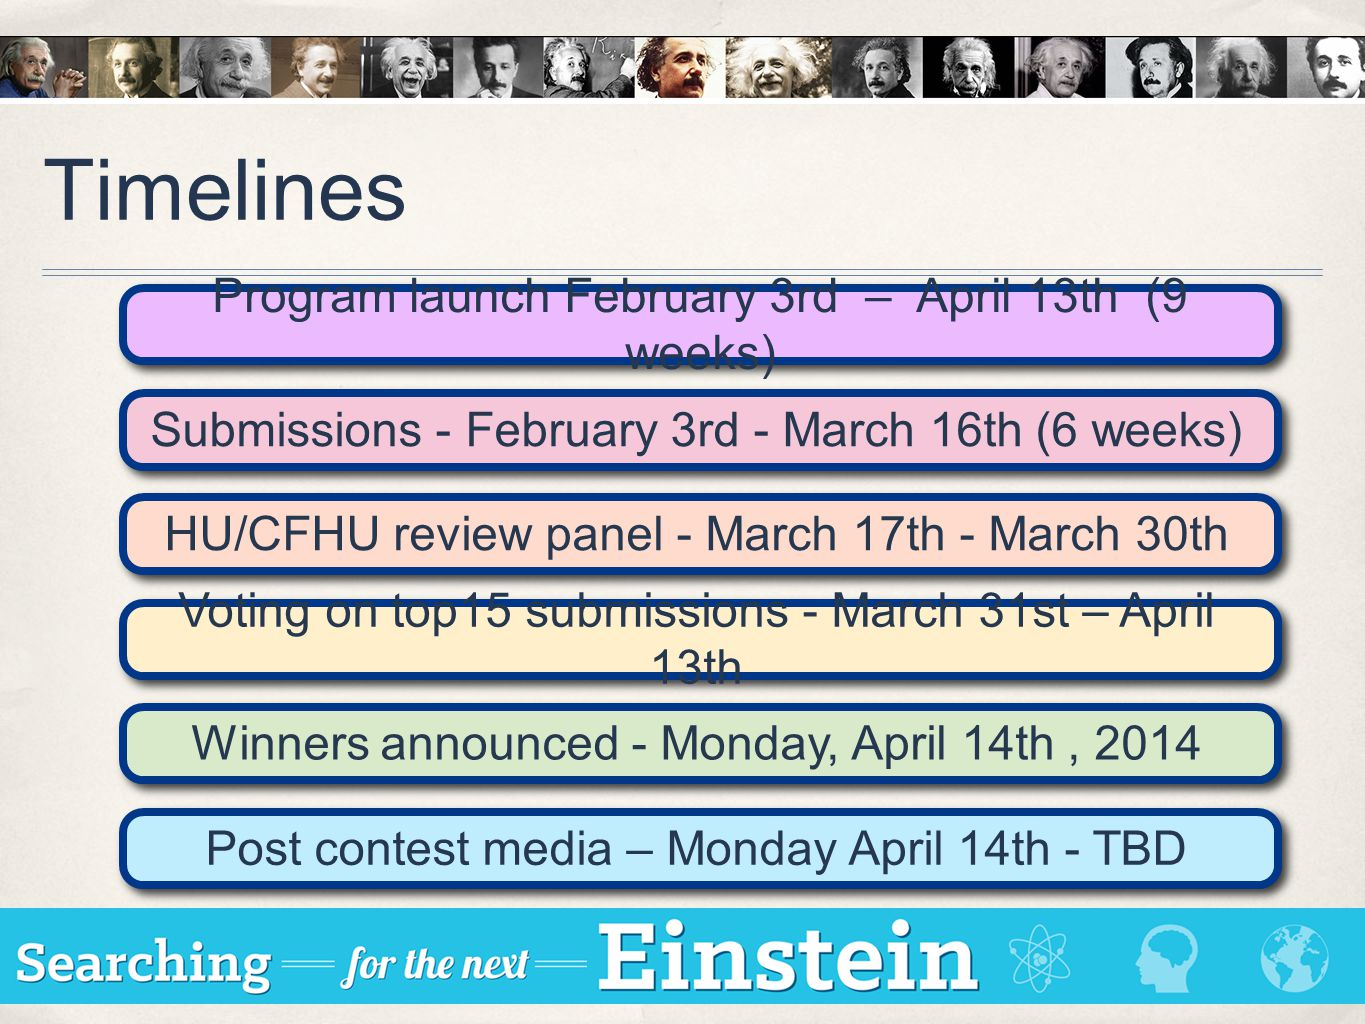 Timelines Program launch February 3rd – April 13th (9 weeks) Submissions - February 3rd - March 16th (6 weeks)HU/CFHU review panel - March 17th - Marc